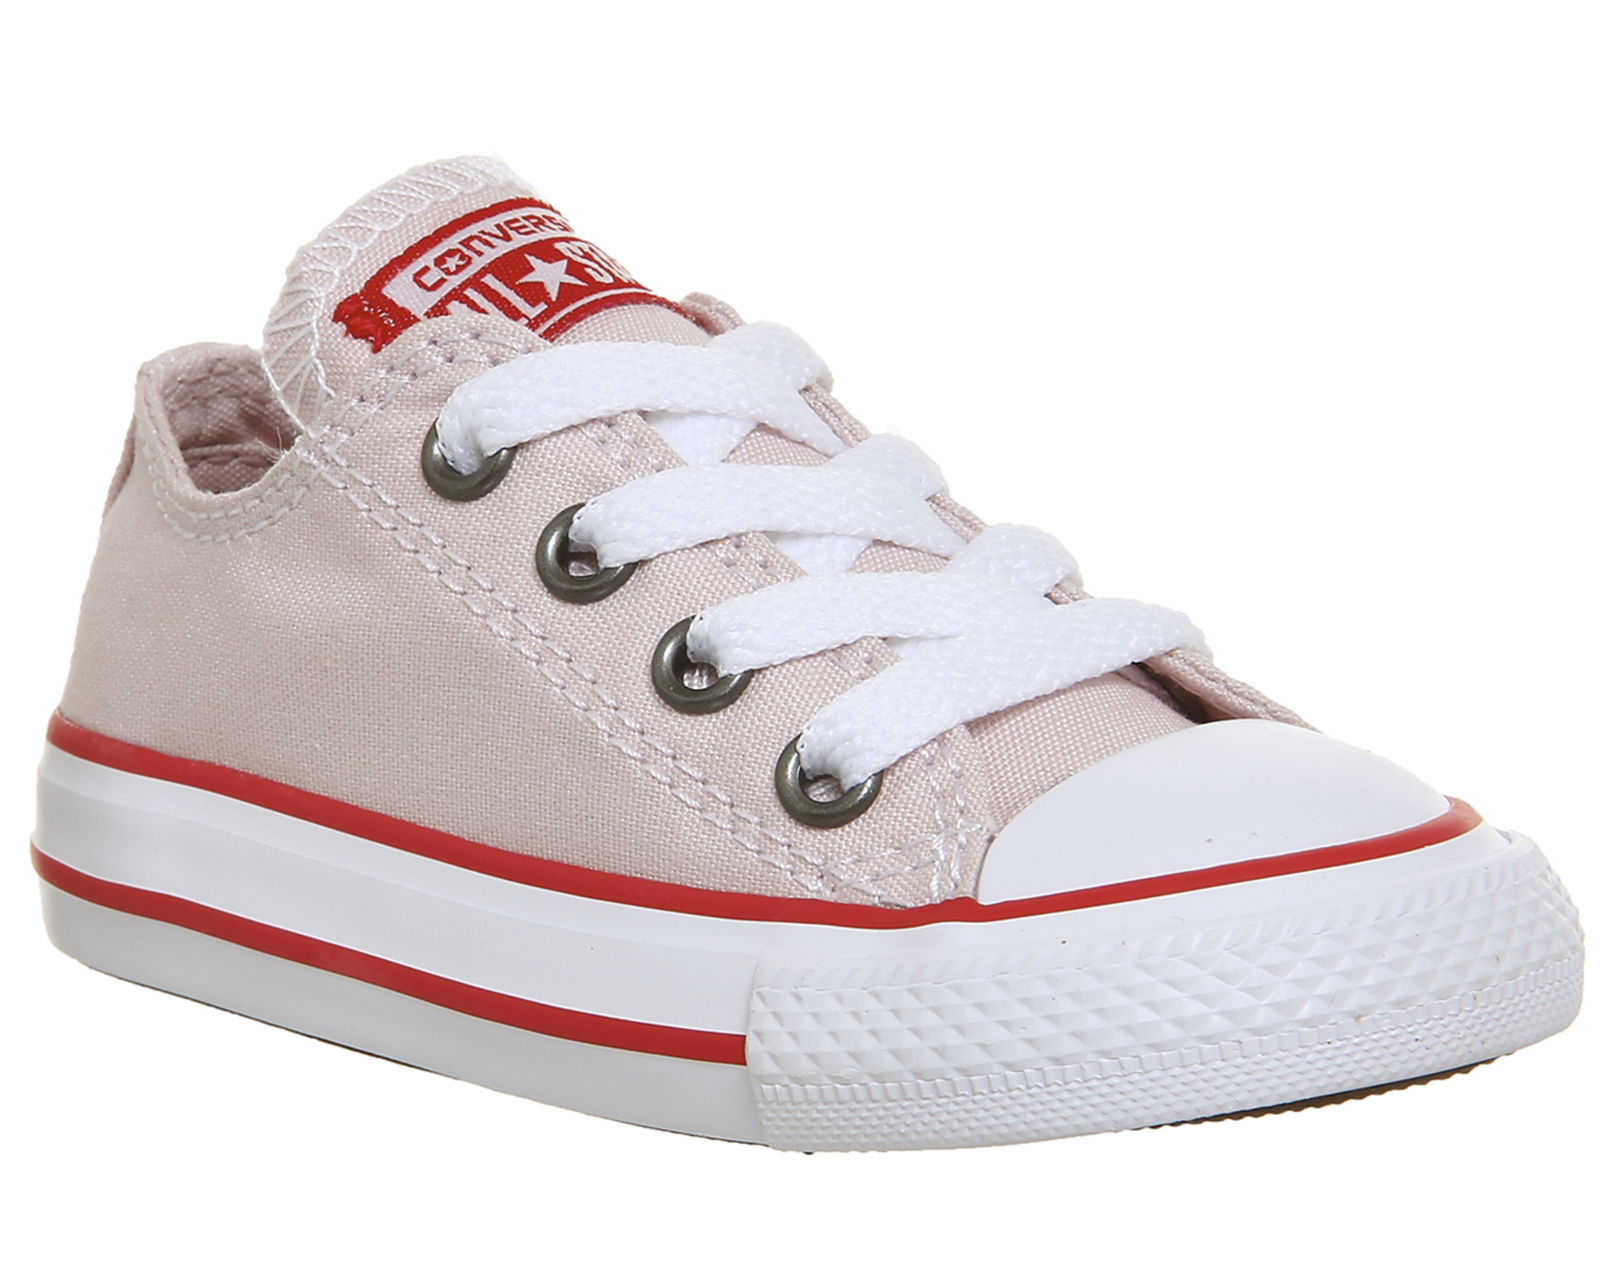 ad5a095b6f72 Sentinel Kids Converse All Star Low Infant Trainers BARELY ROSE ENAMEL RED  Kids